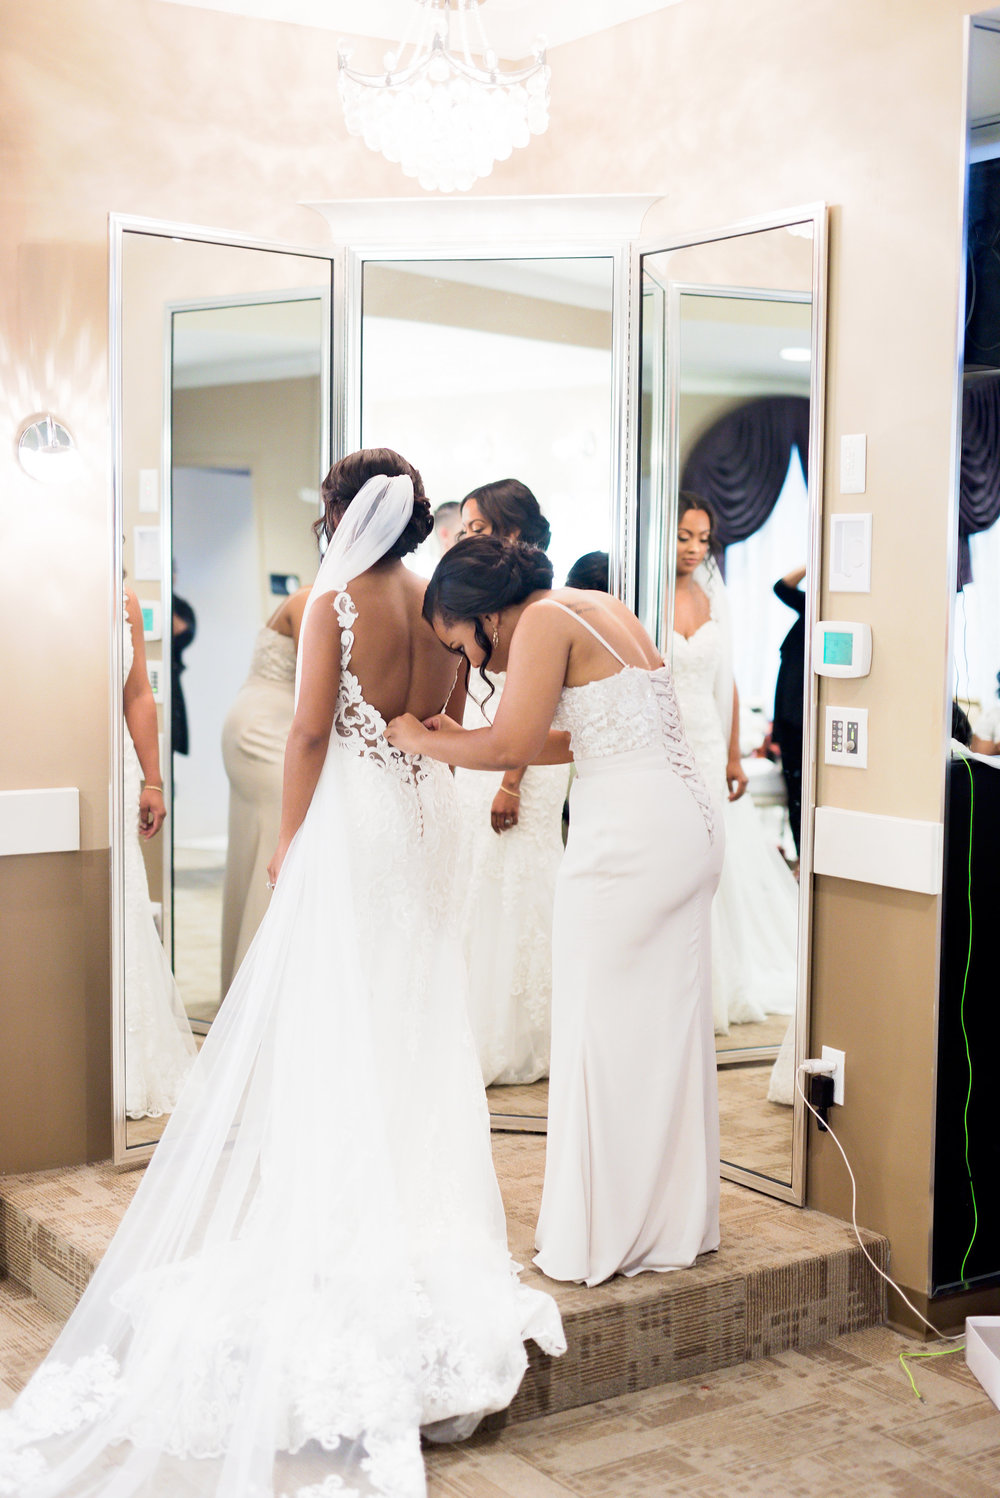 Dallas Wedding- Texas- Pharris Photography- Chelsea + Aaron- Bride- Wedding Gown